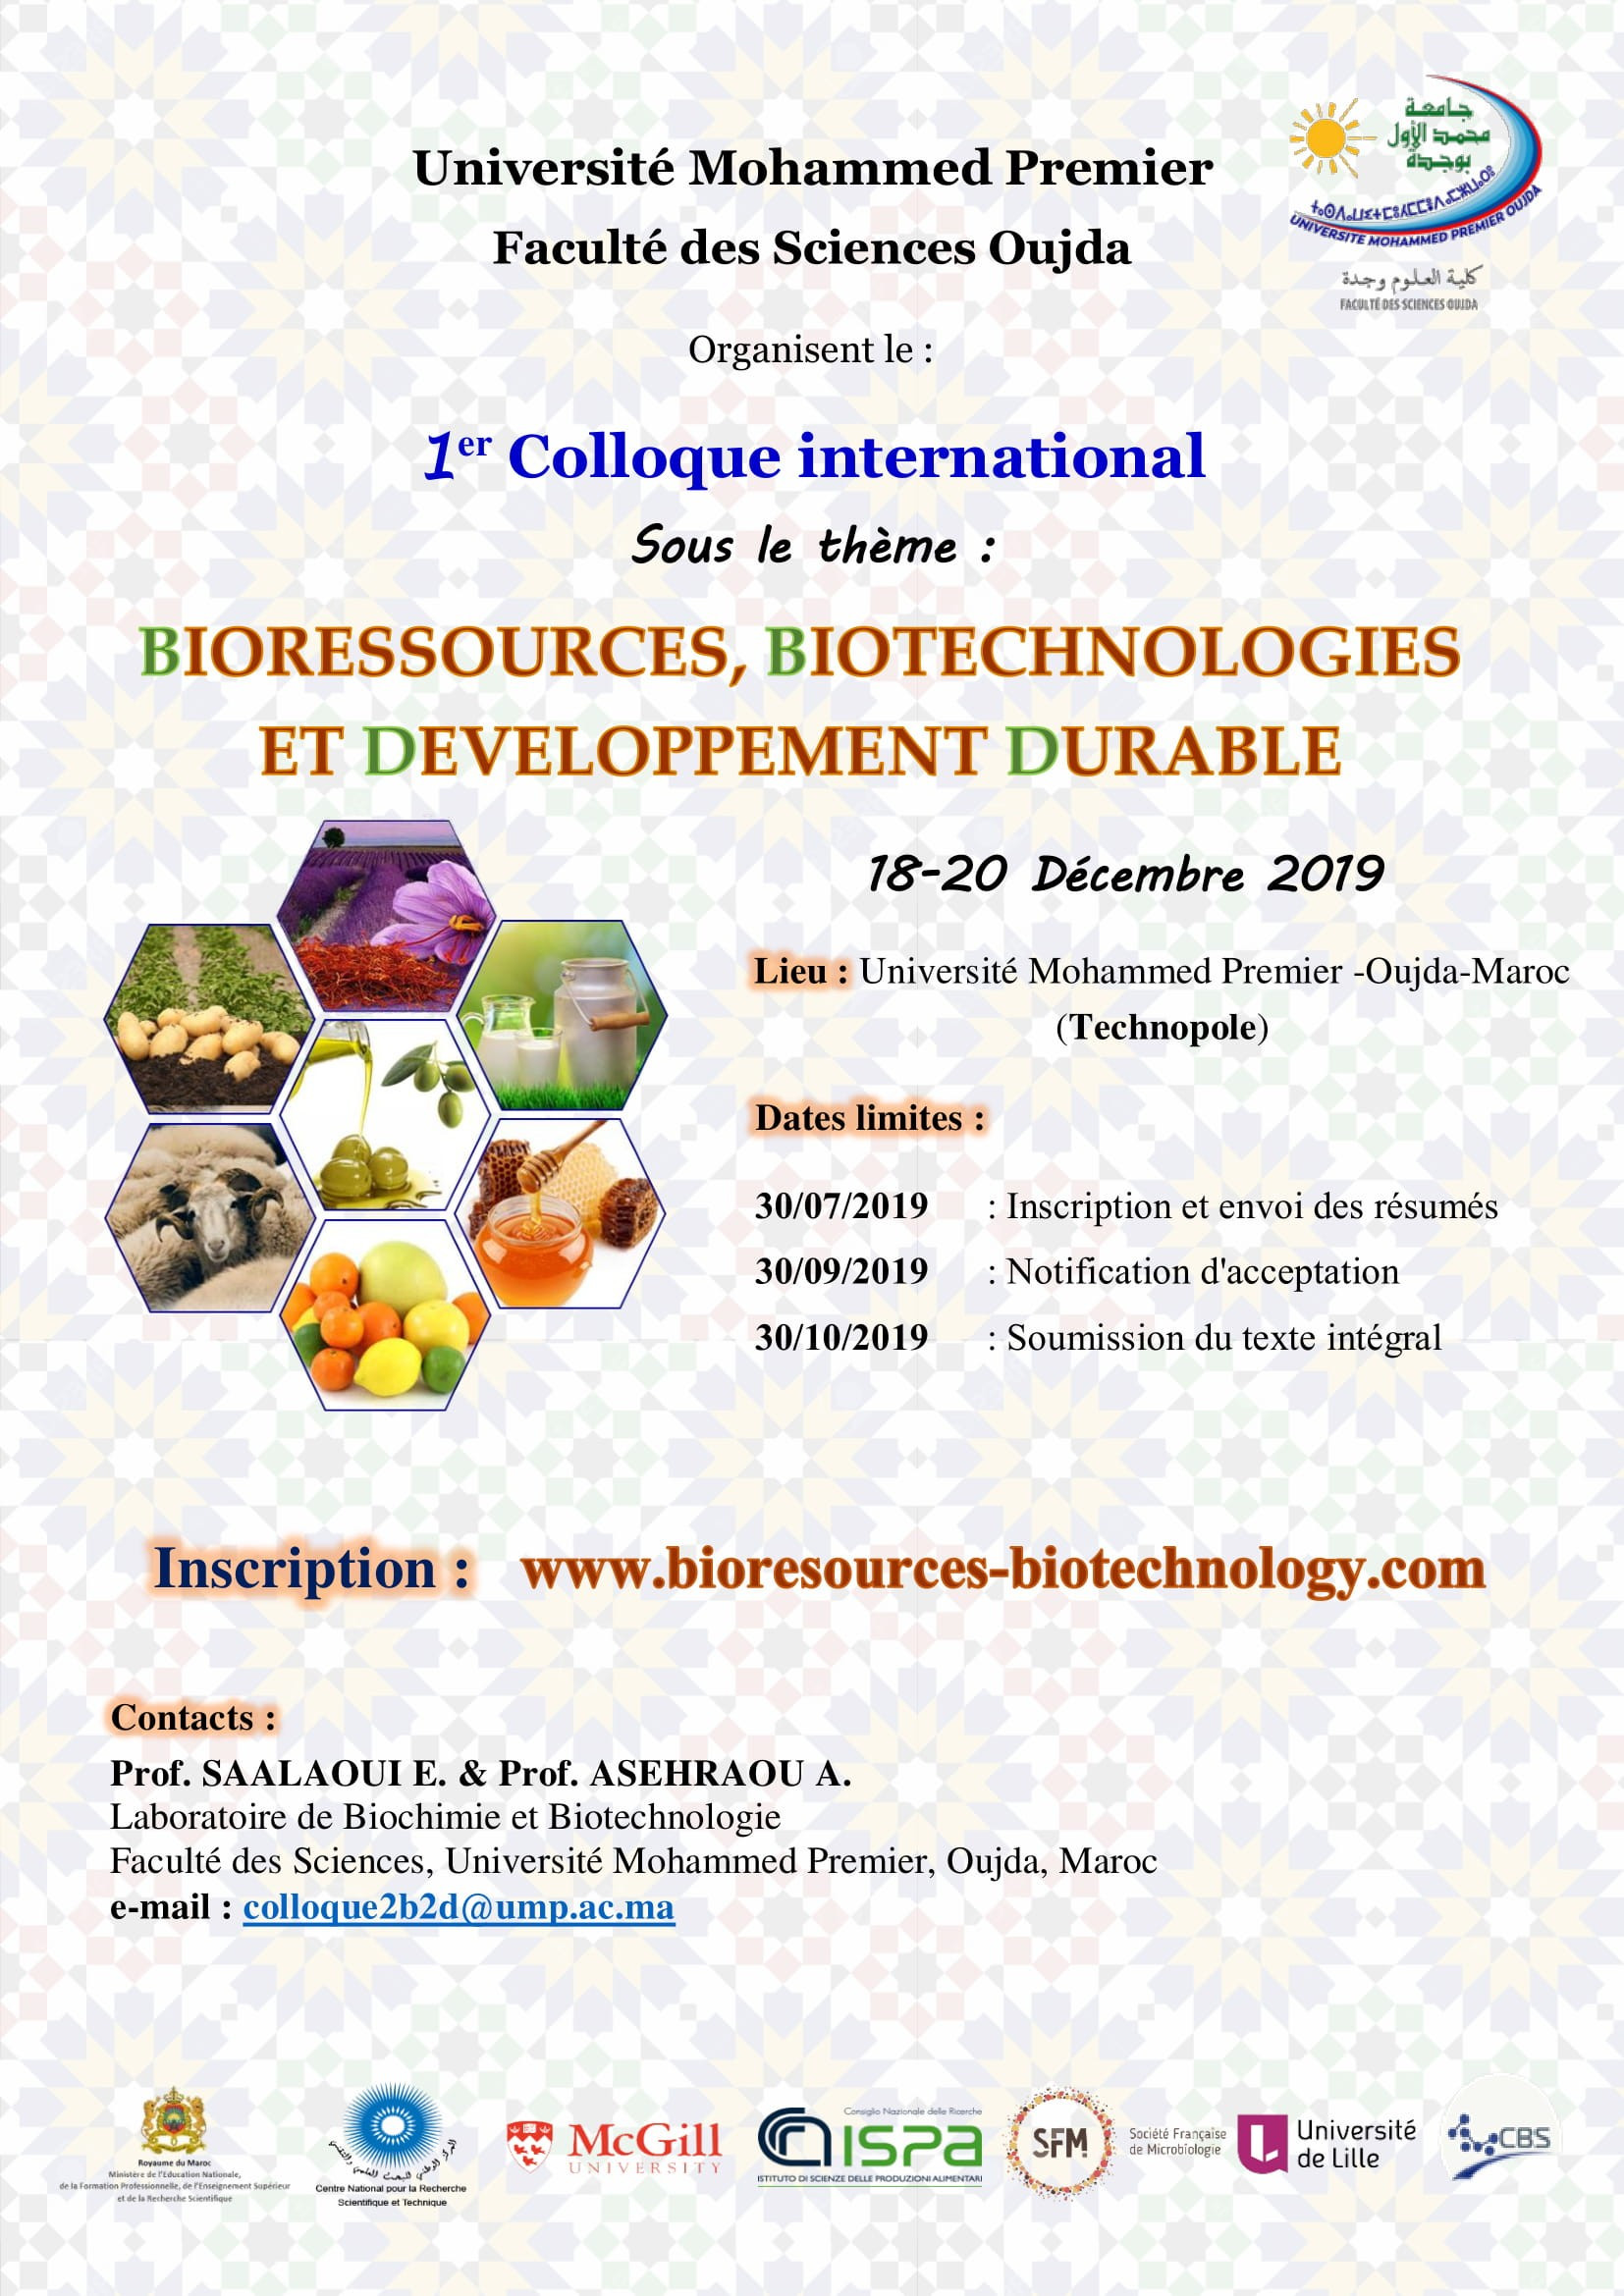 1er Colloque international : BIORESSOURCES, BIOTECHNOLOGIES ET DEVELOPPEMENT DURABLE